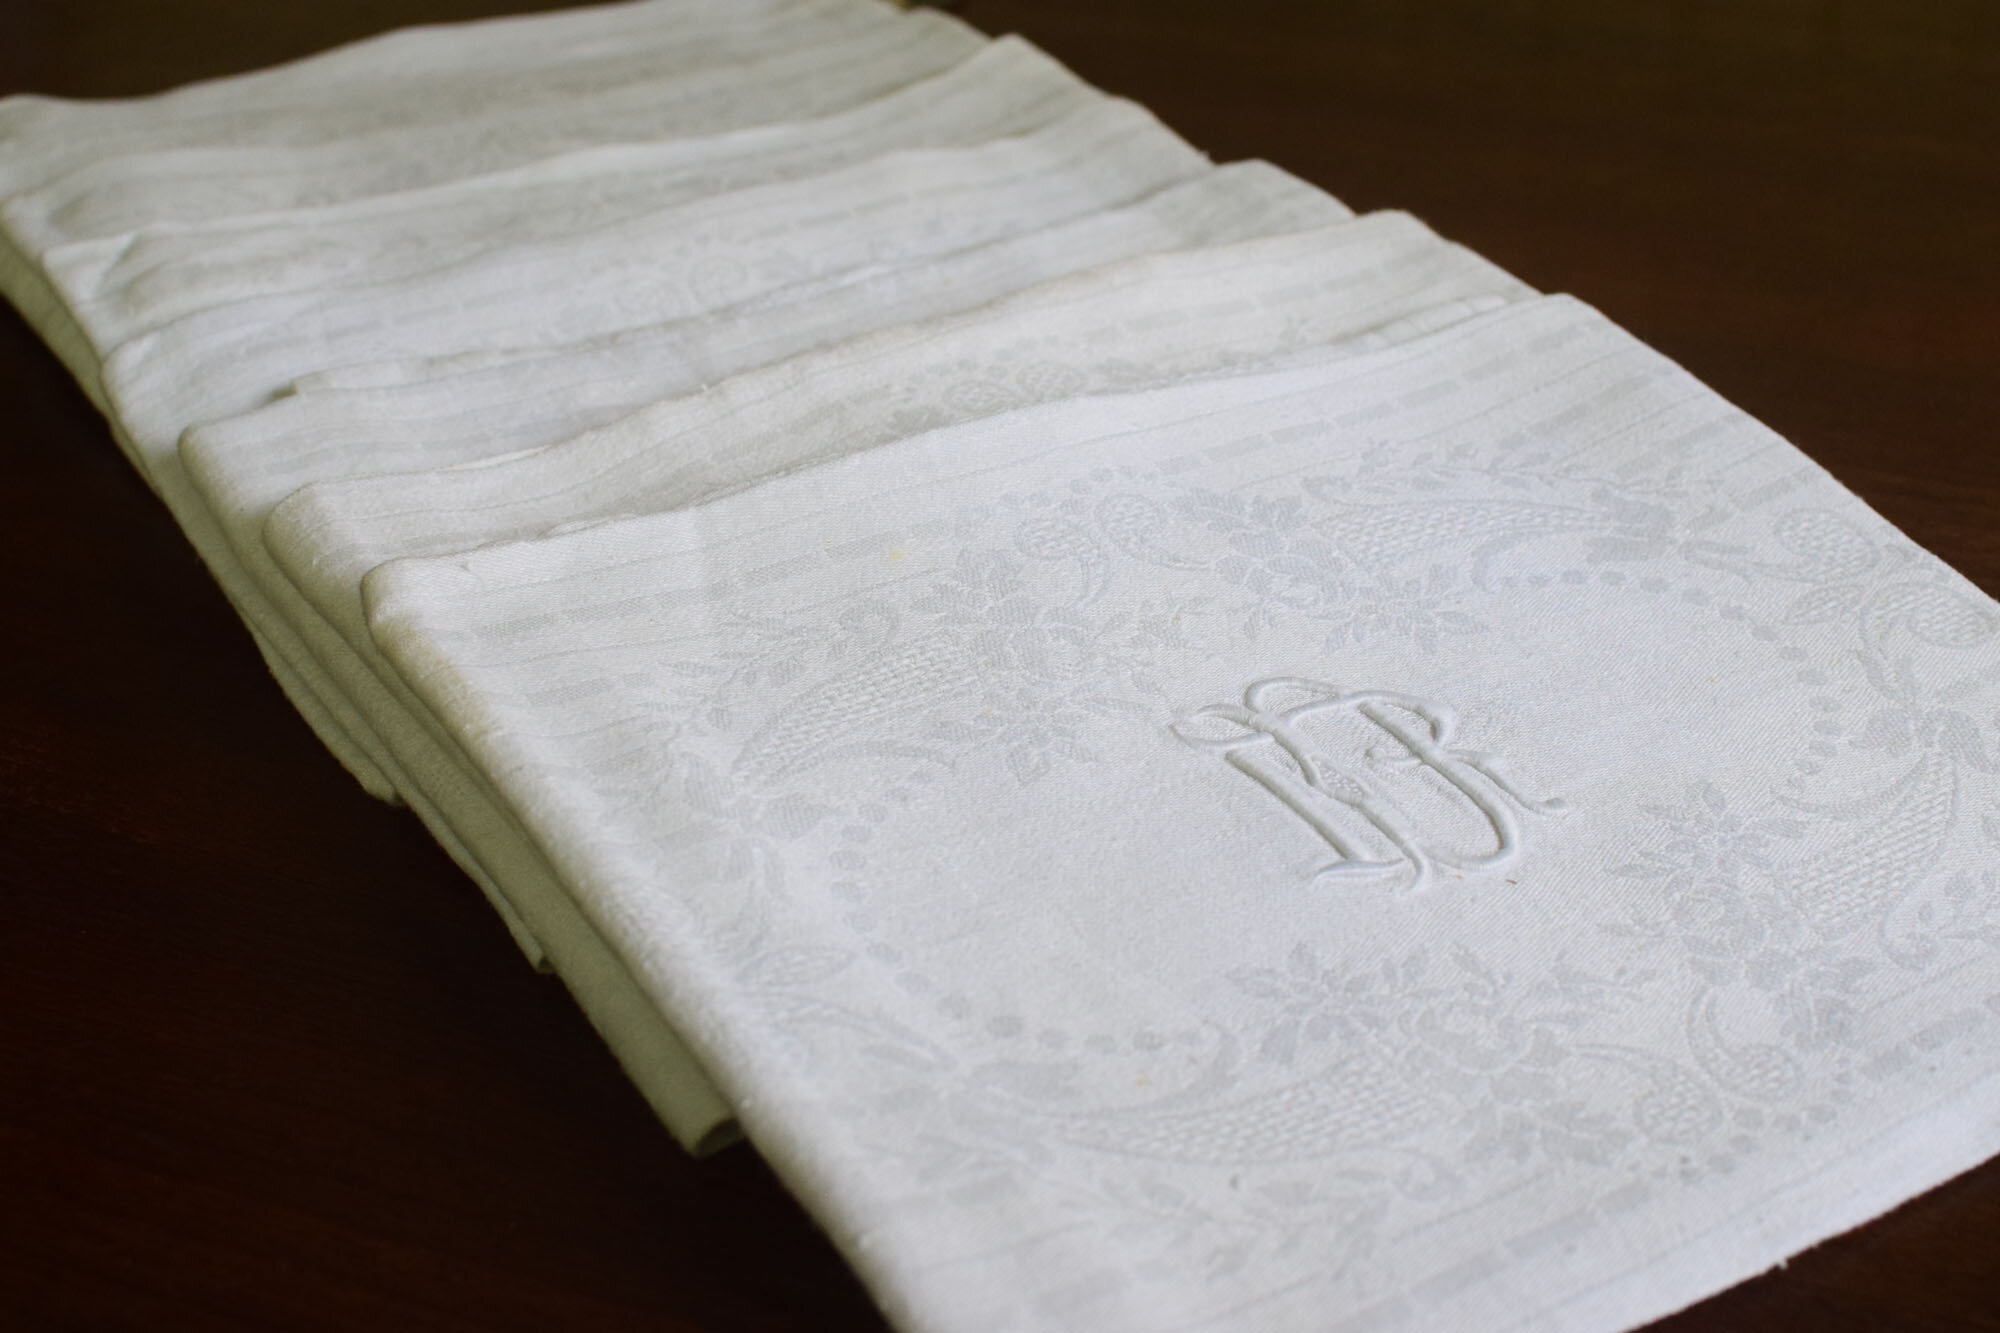 9 Monogrammed Vintage French Silk And Linen Napkins Initials D R French Antiques Vintage French Decor French Linens Cafe Au Lait Bowls And More